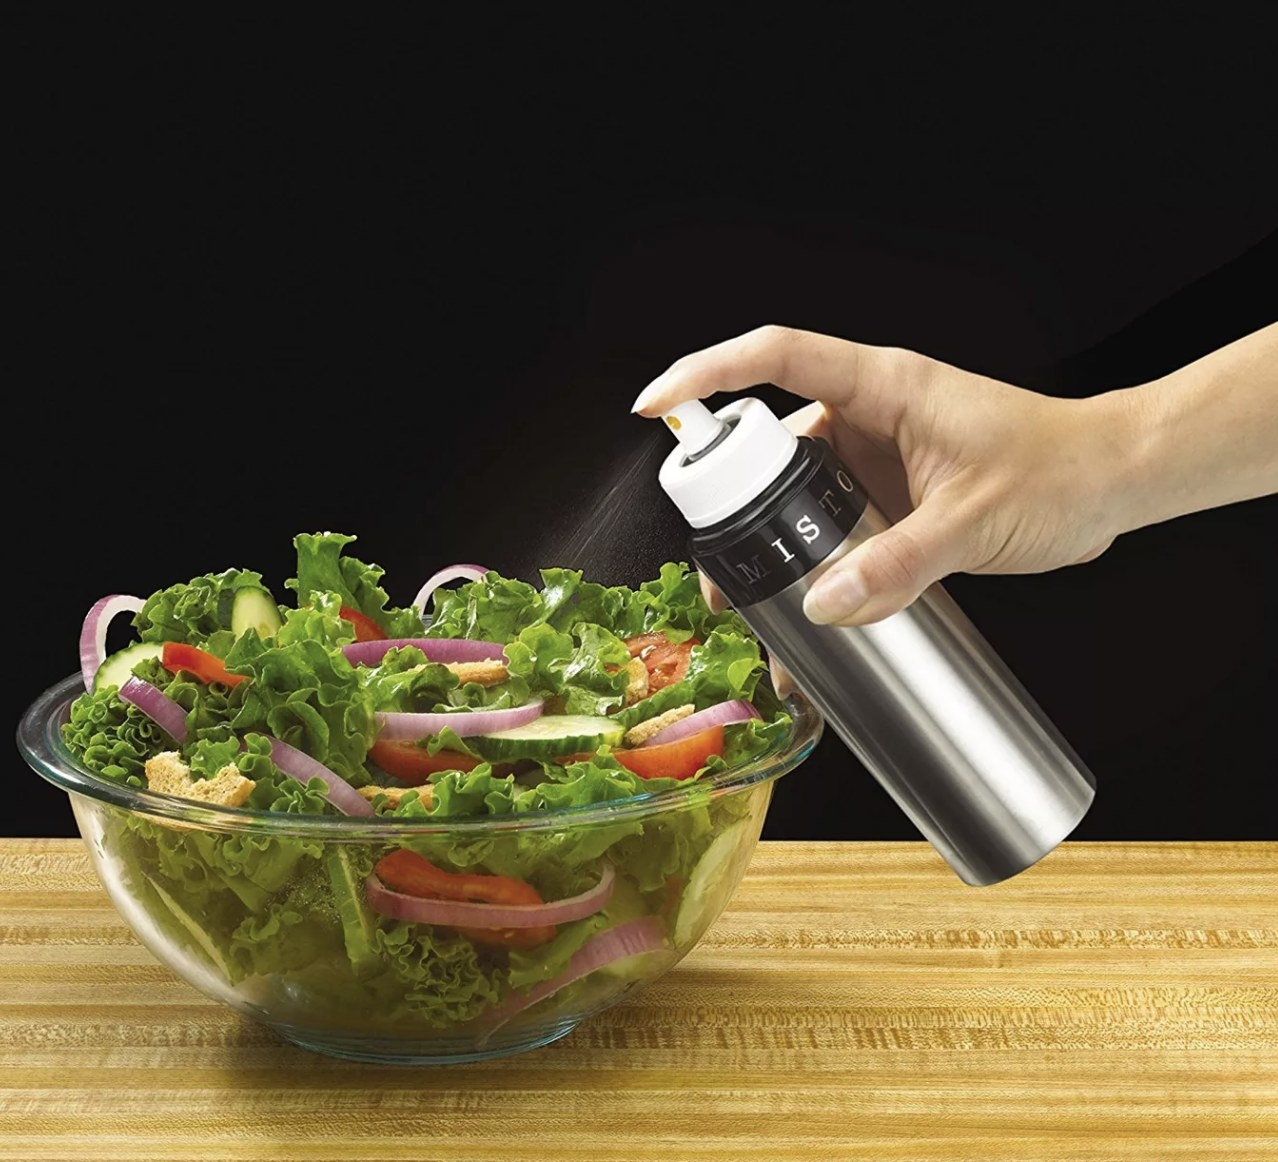 a person misting a salad with misto oil sprayer